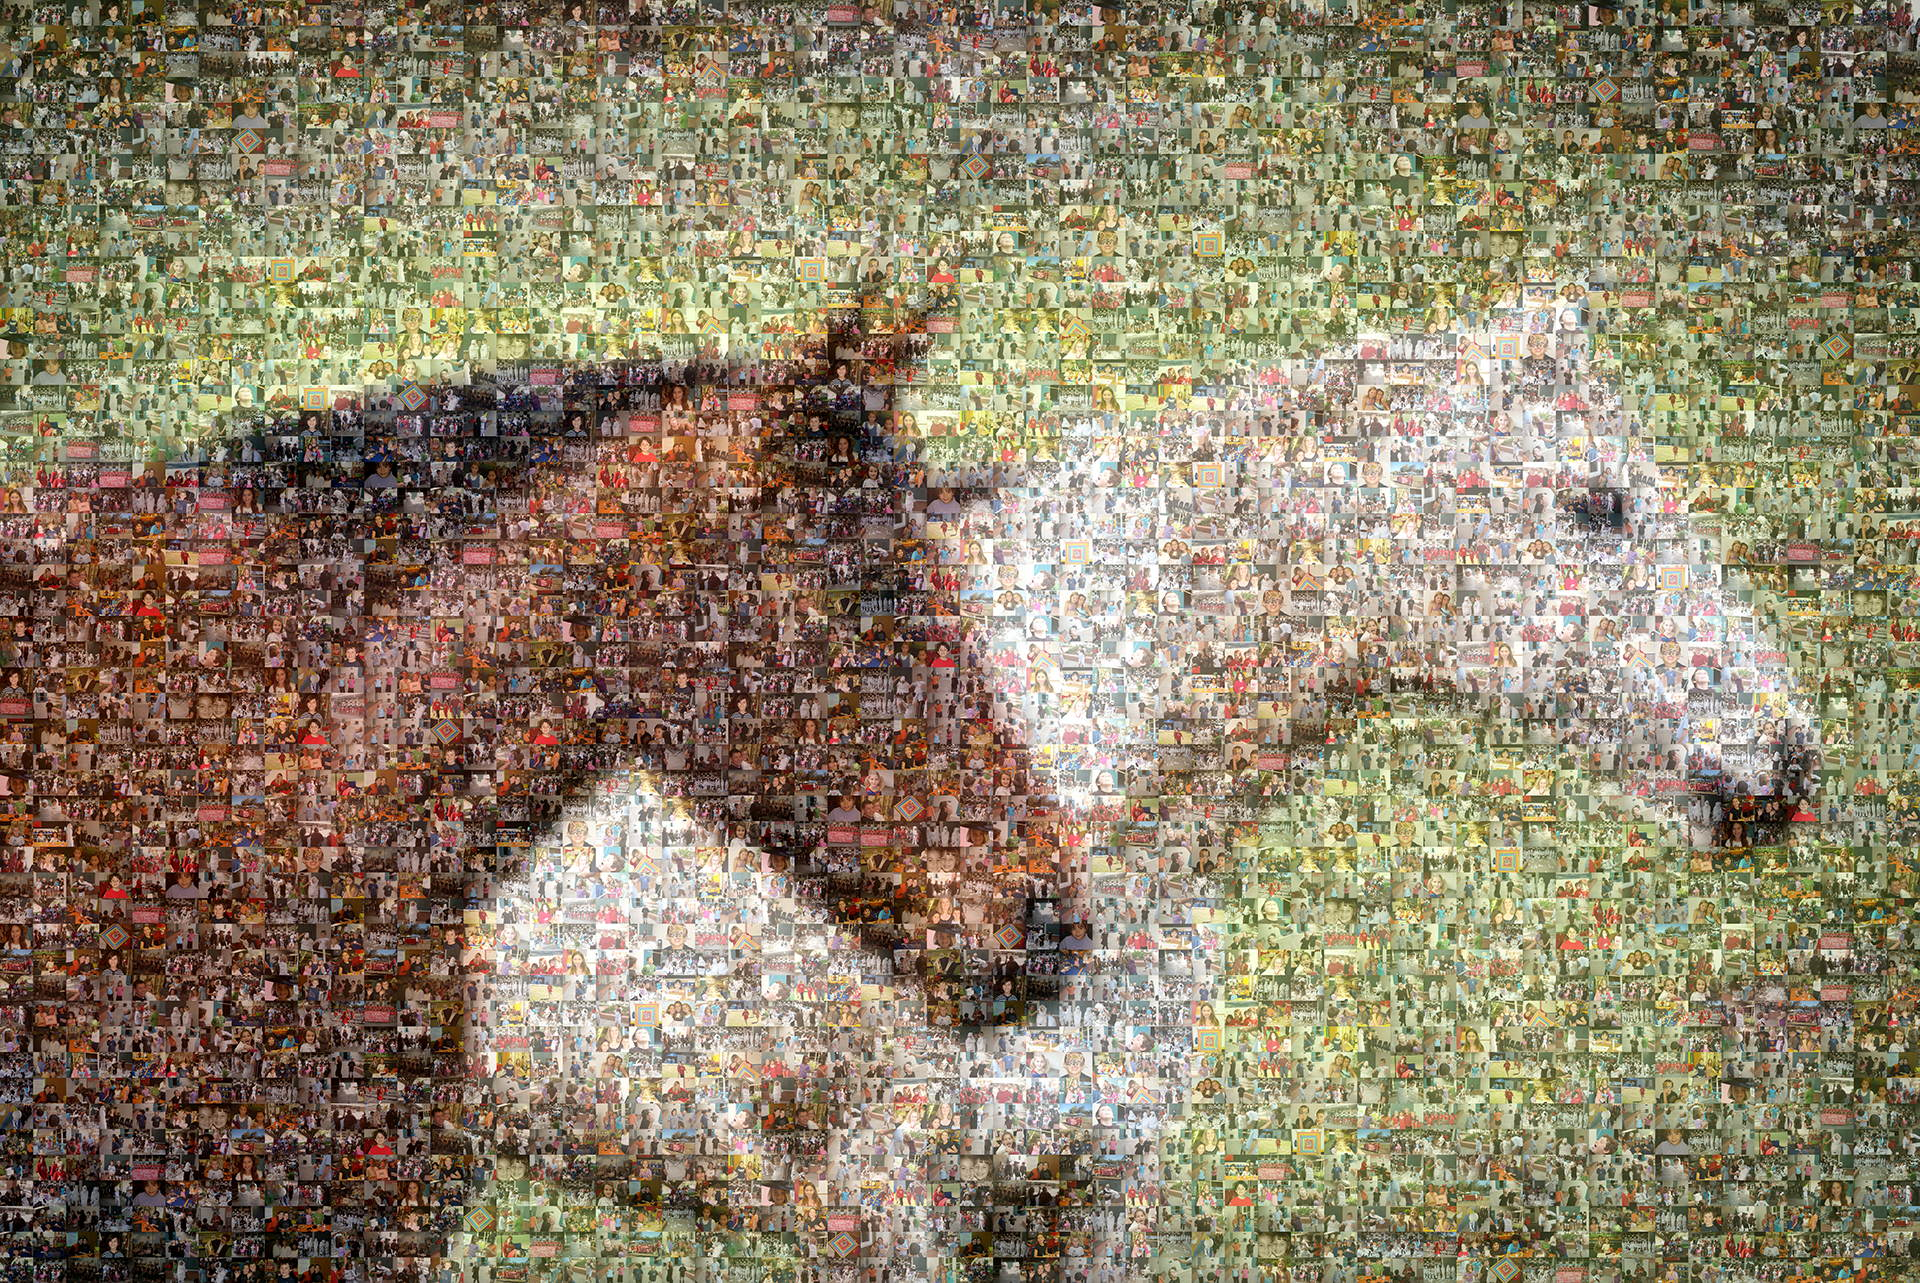 photo mosaic created using 246 student portraits